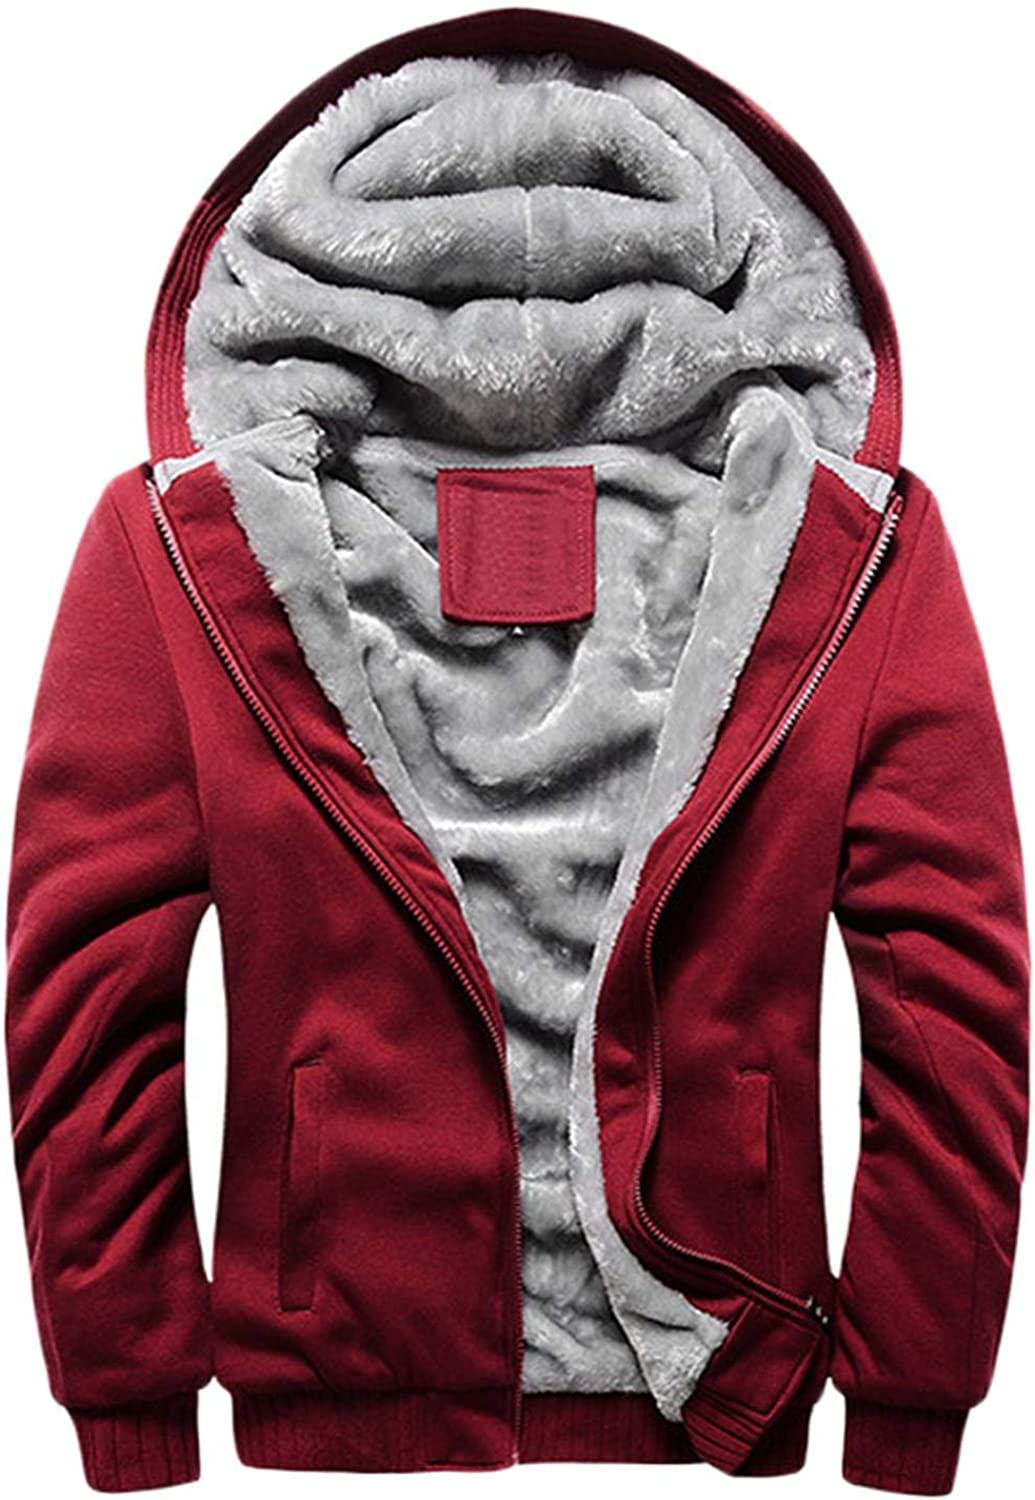 Men Hoodie Sweatshirt Classic Solid Color Hood Casual Thick Warm Tracksuit Coat Fleece Lined Male Hoody,Red,4XL